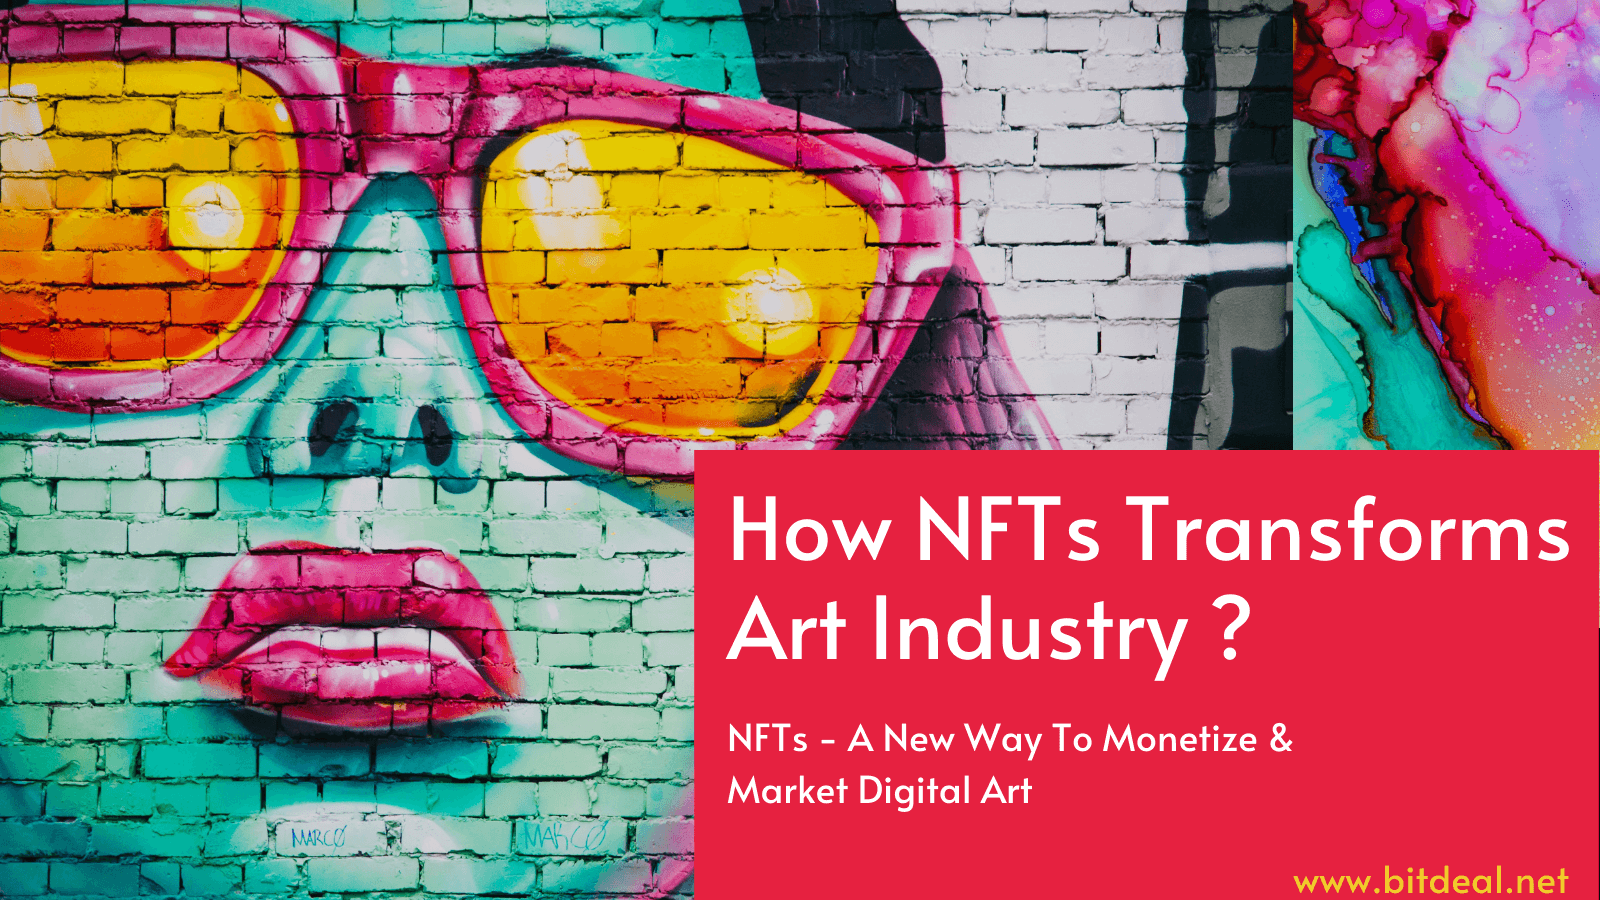 How Non-Fungible Tokens (NFTs) Are Transforming The Art Industry?